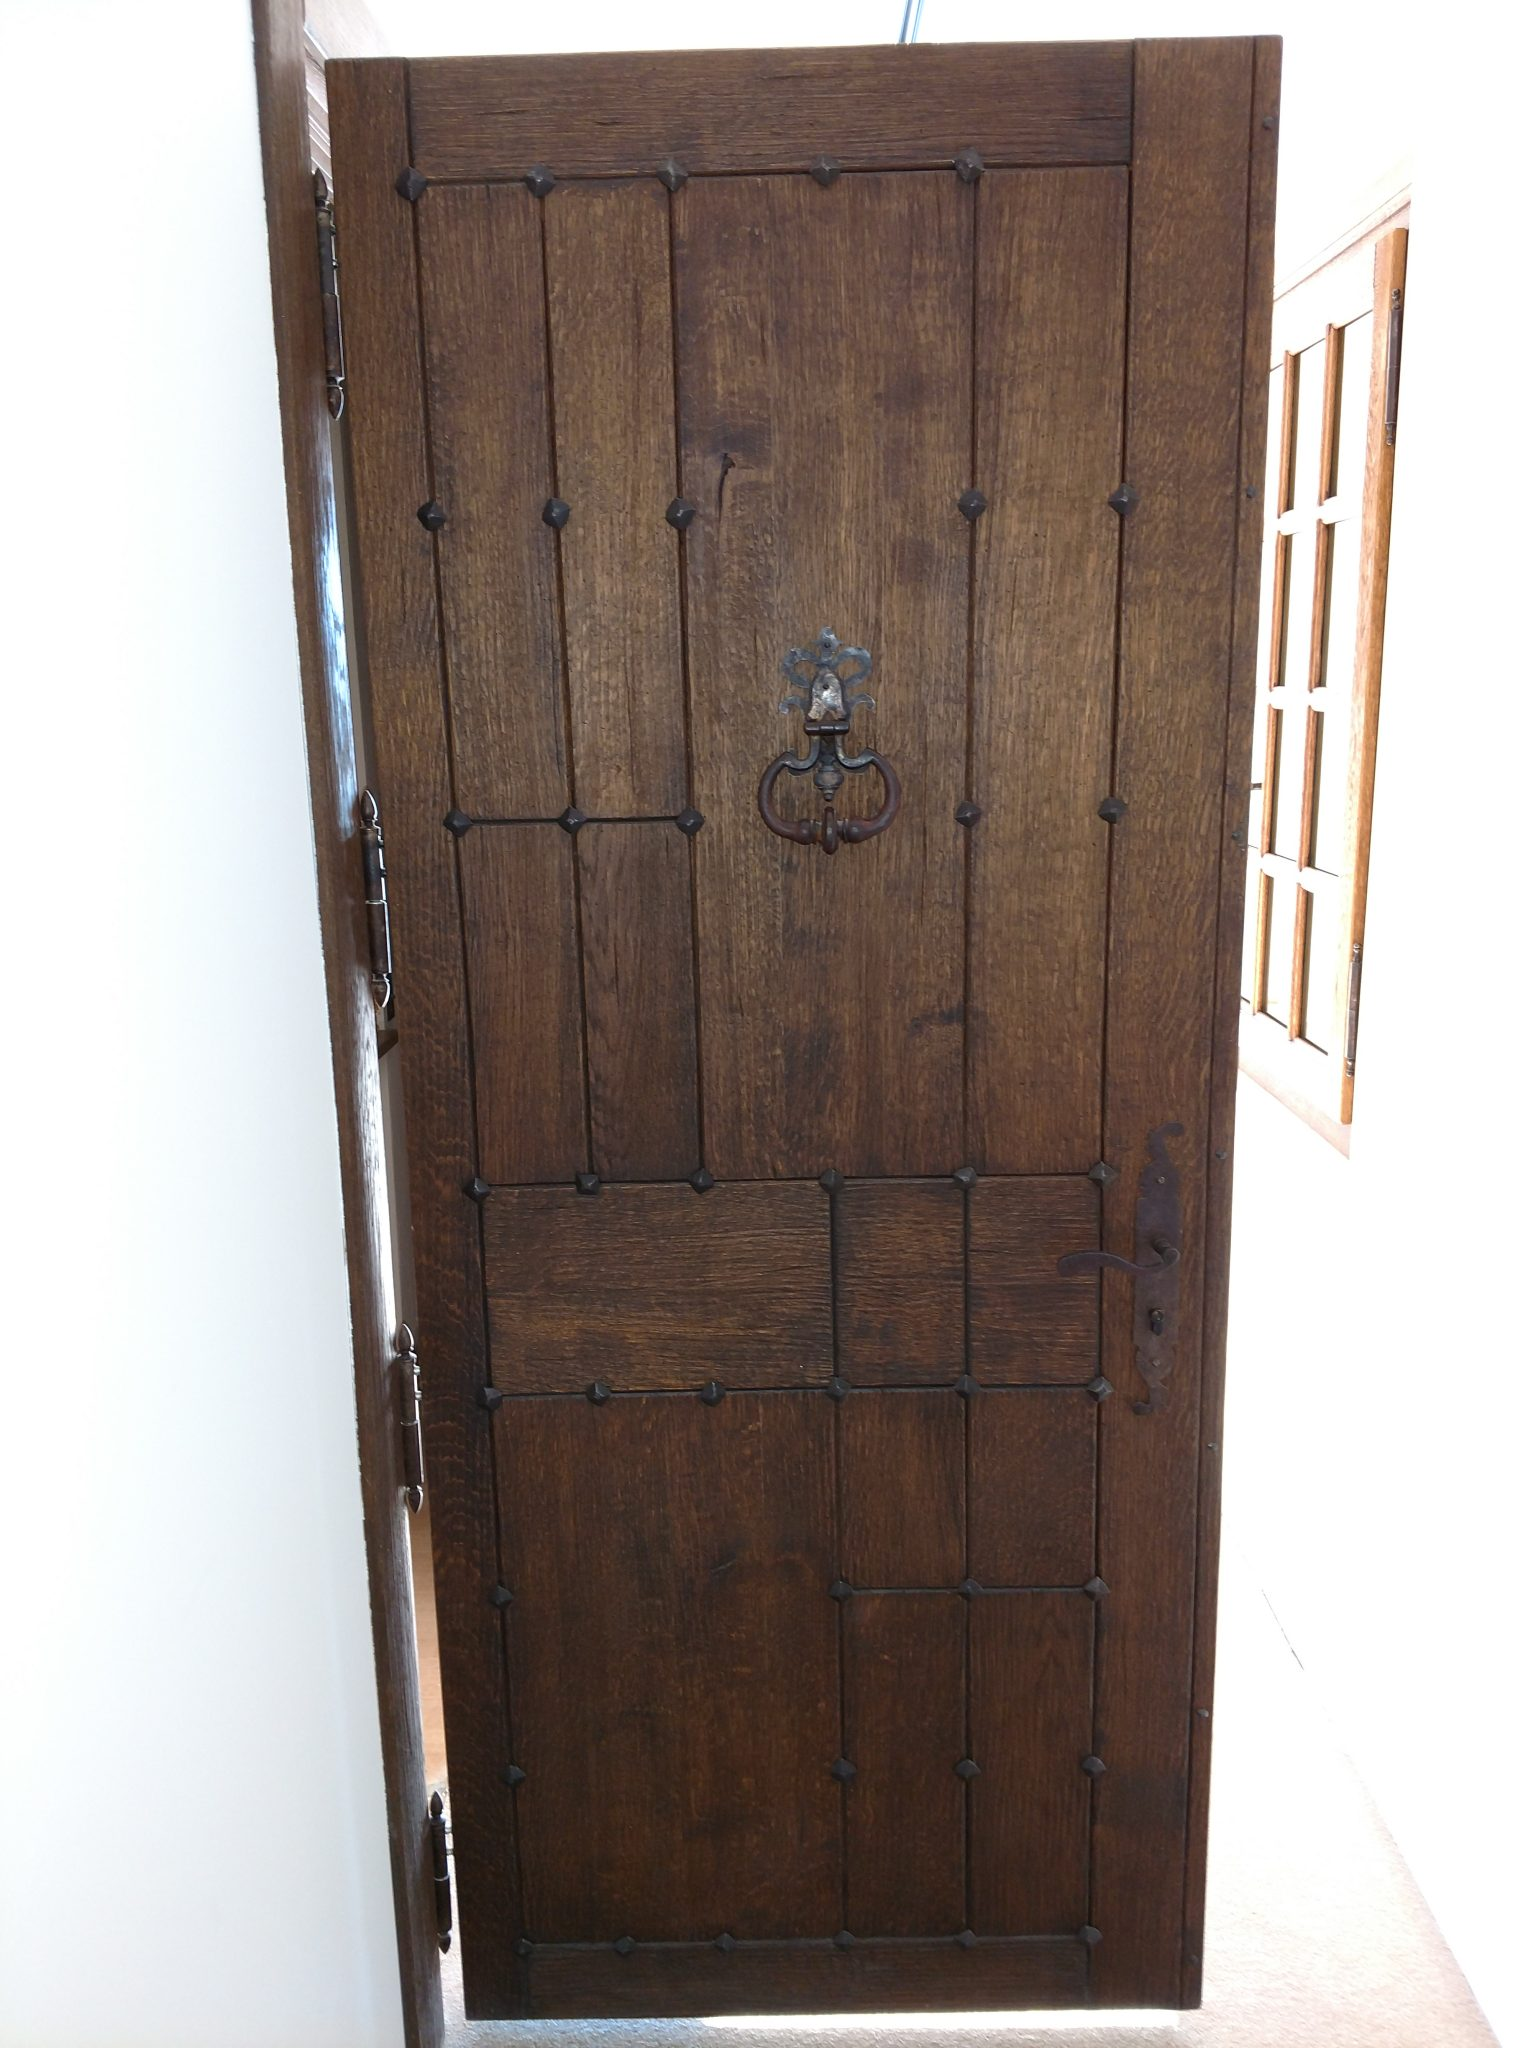 A custom wood with iron accents entryway door